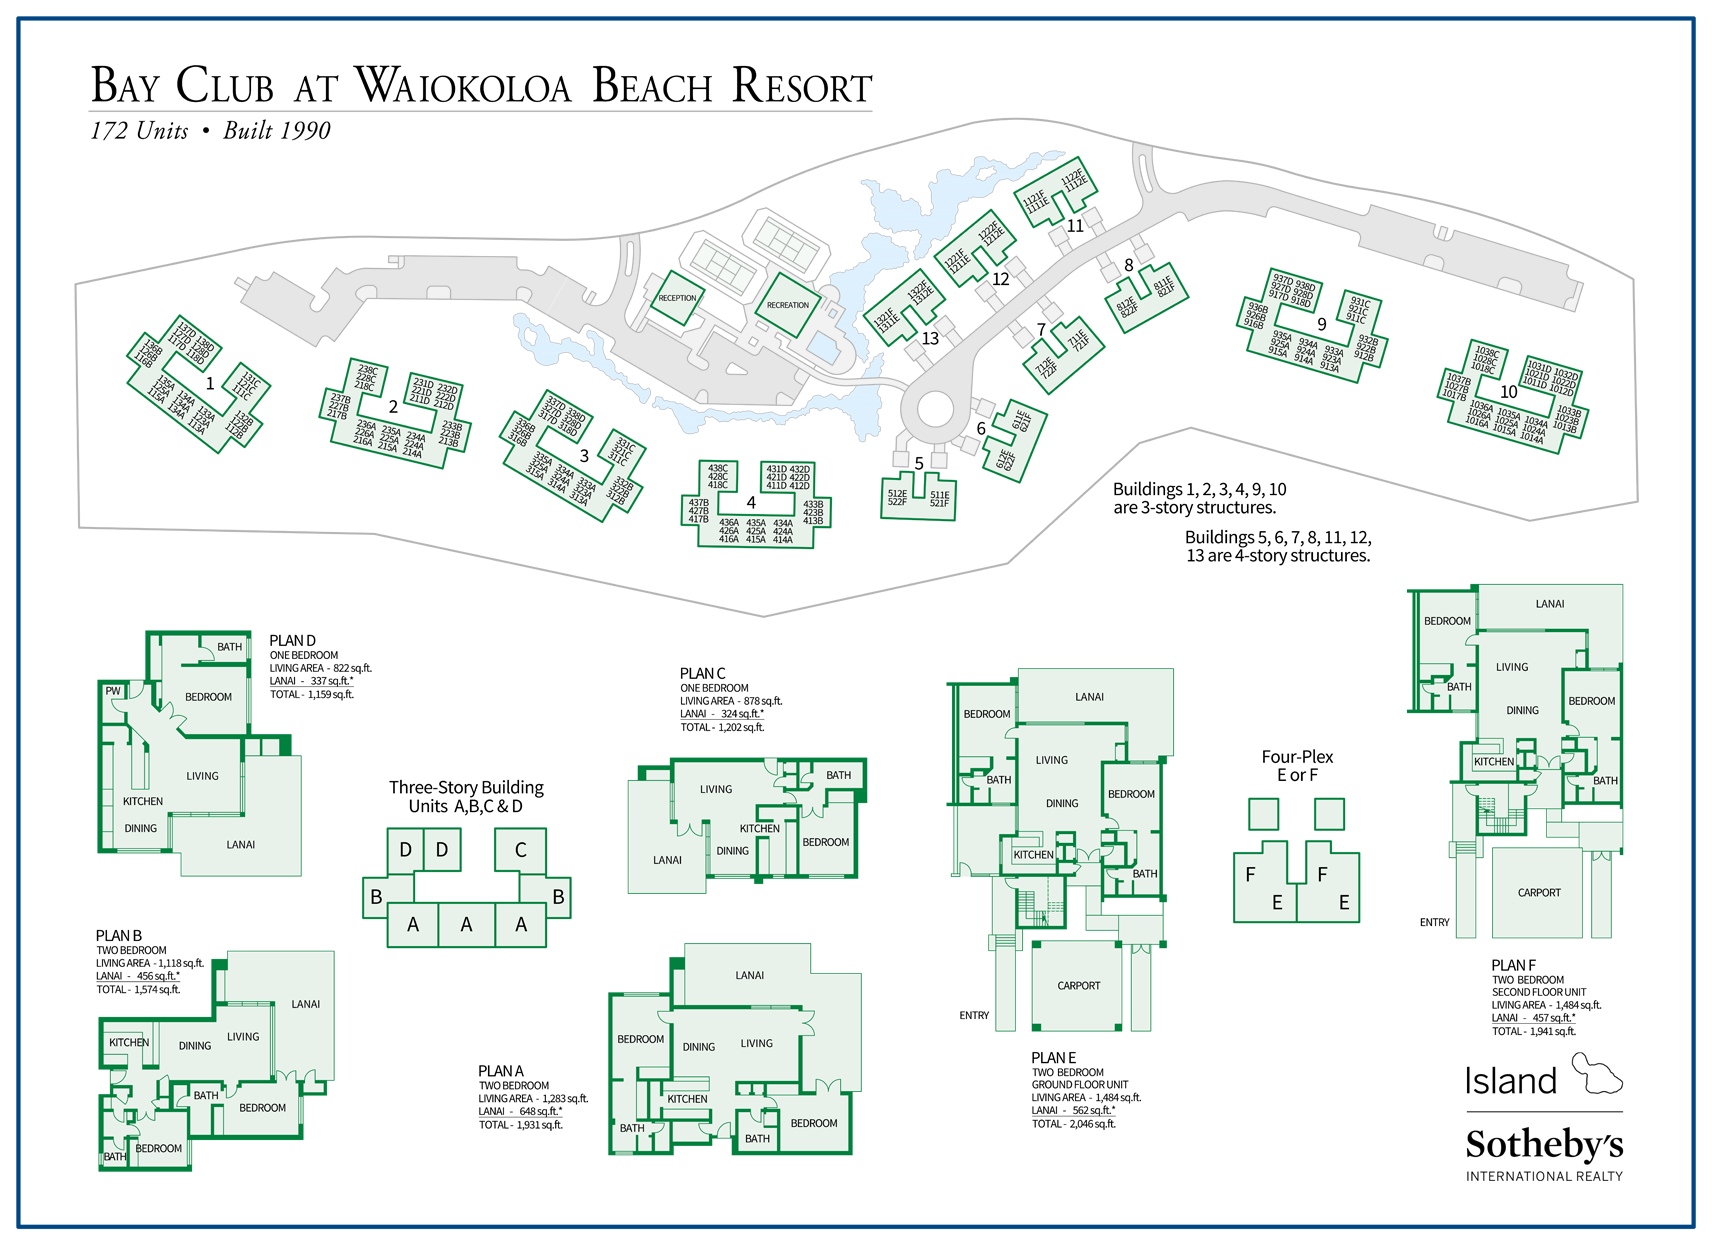 bay club at waiokoloa beach resort map with floor plans